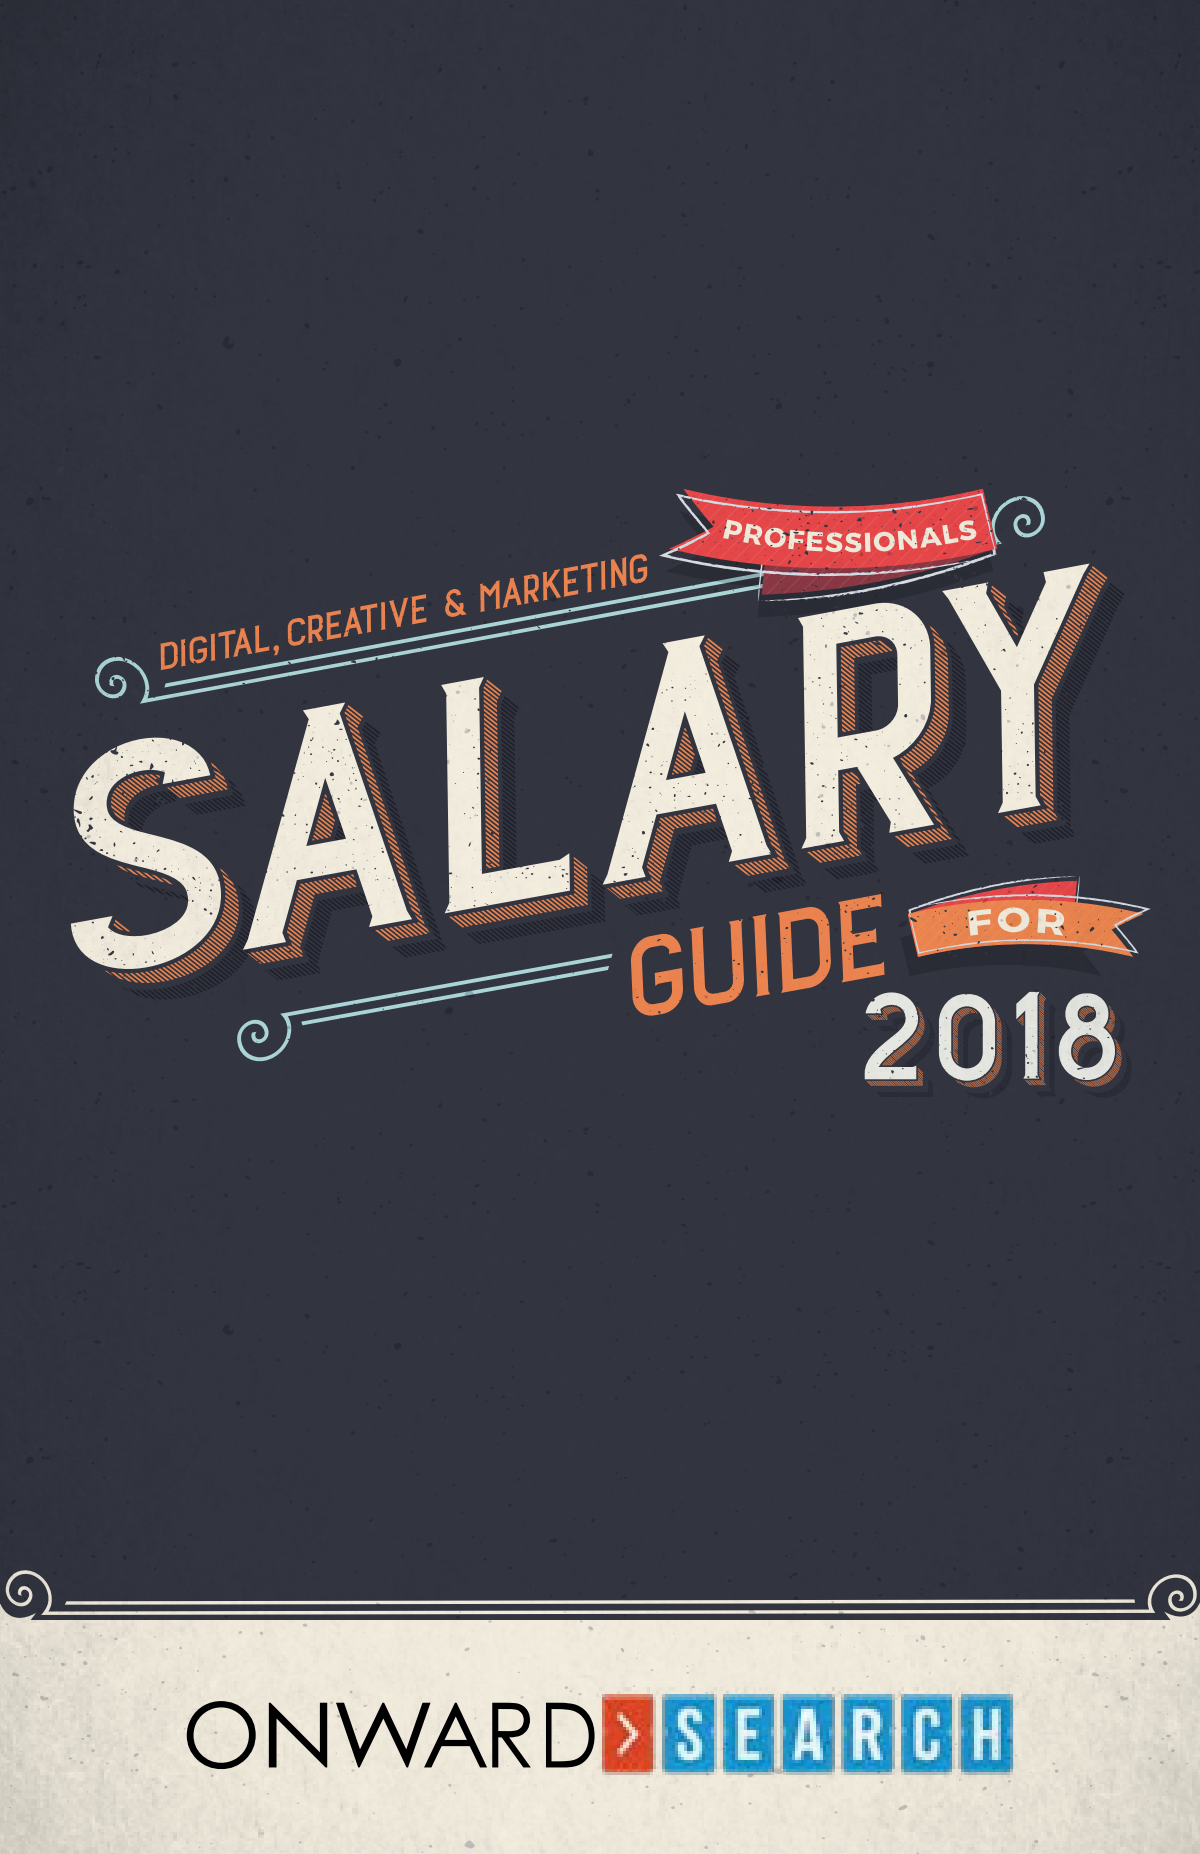 Completion of Onward Search Salary Guide